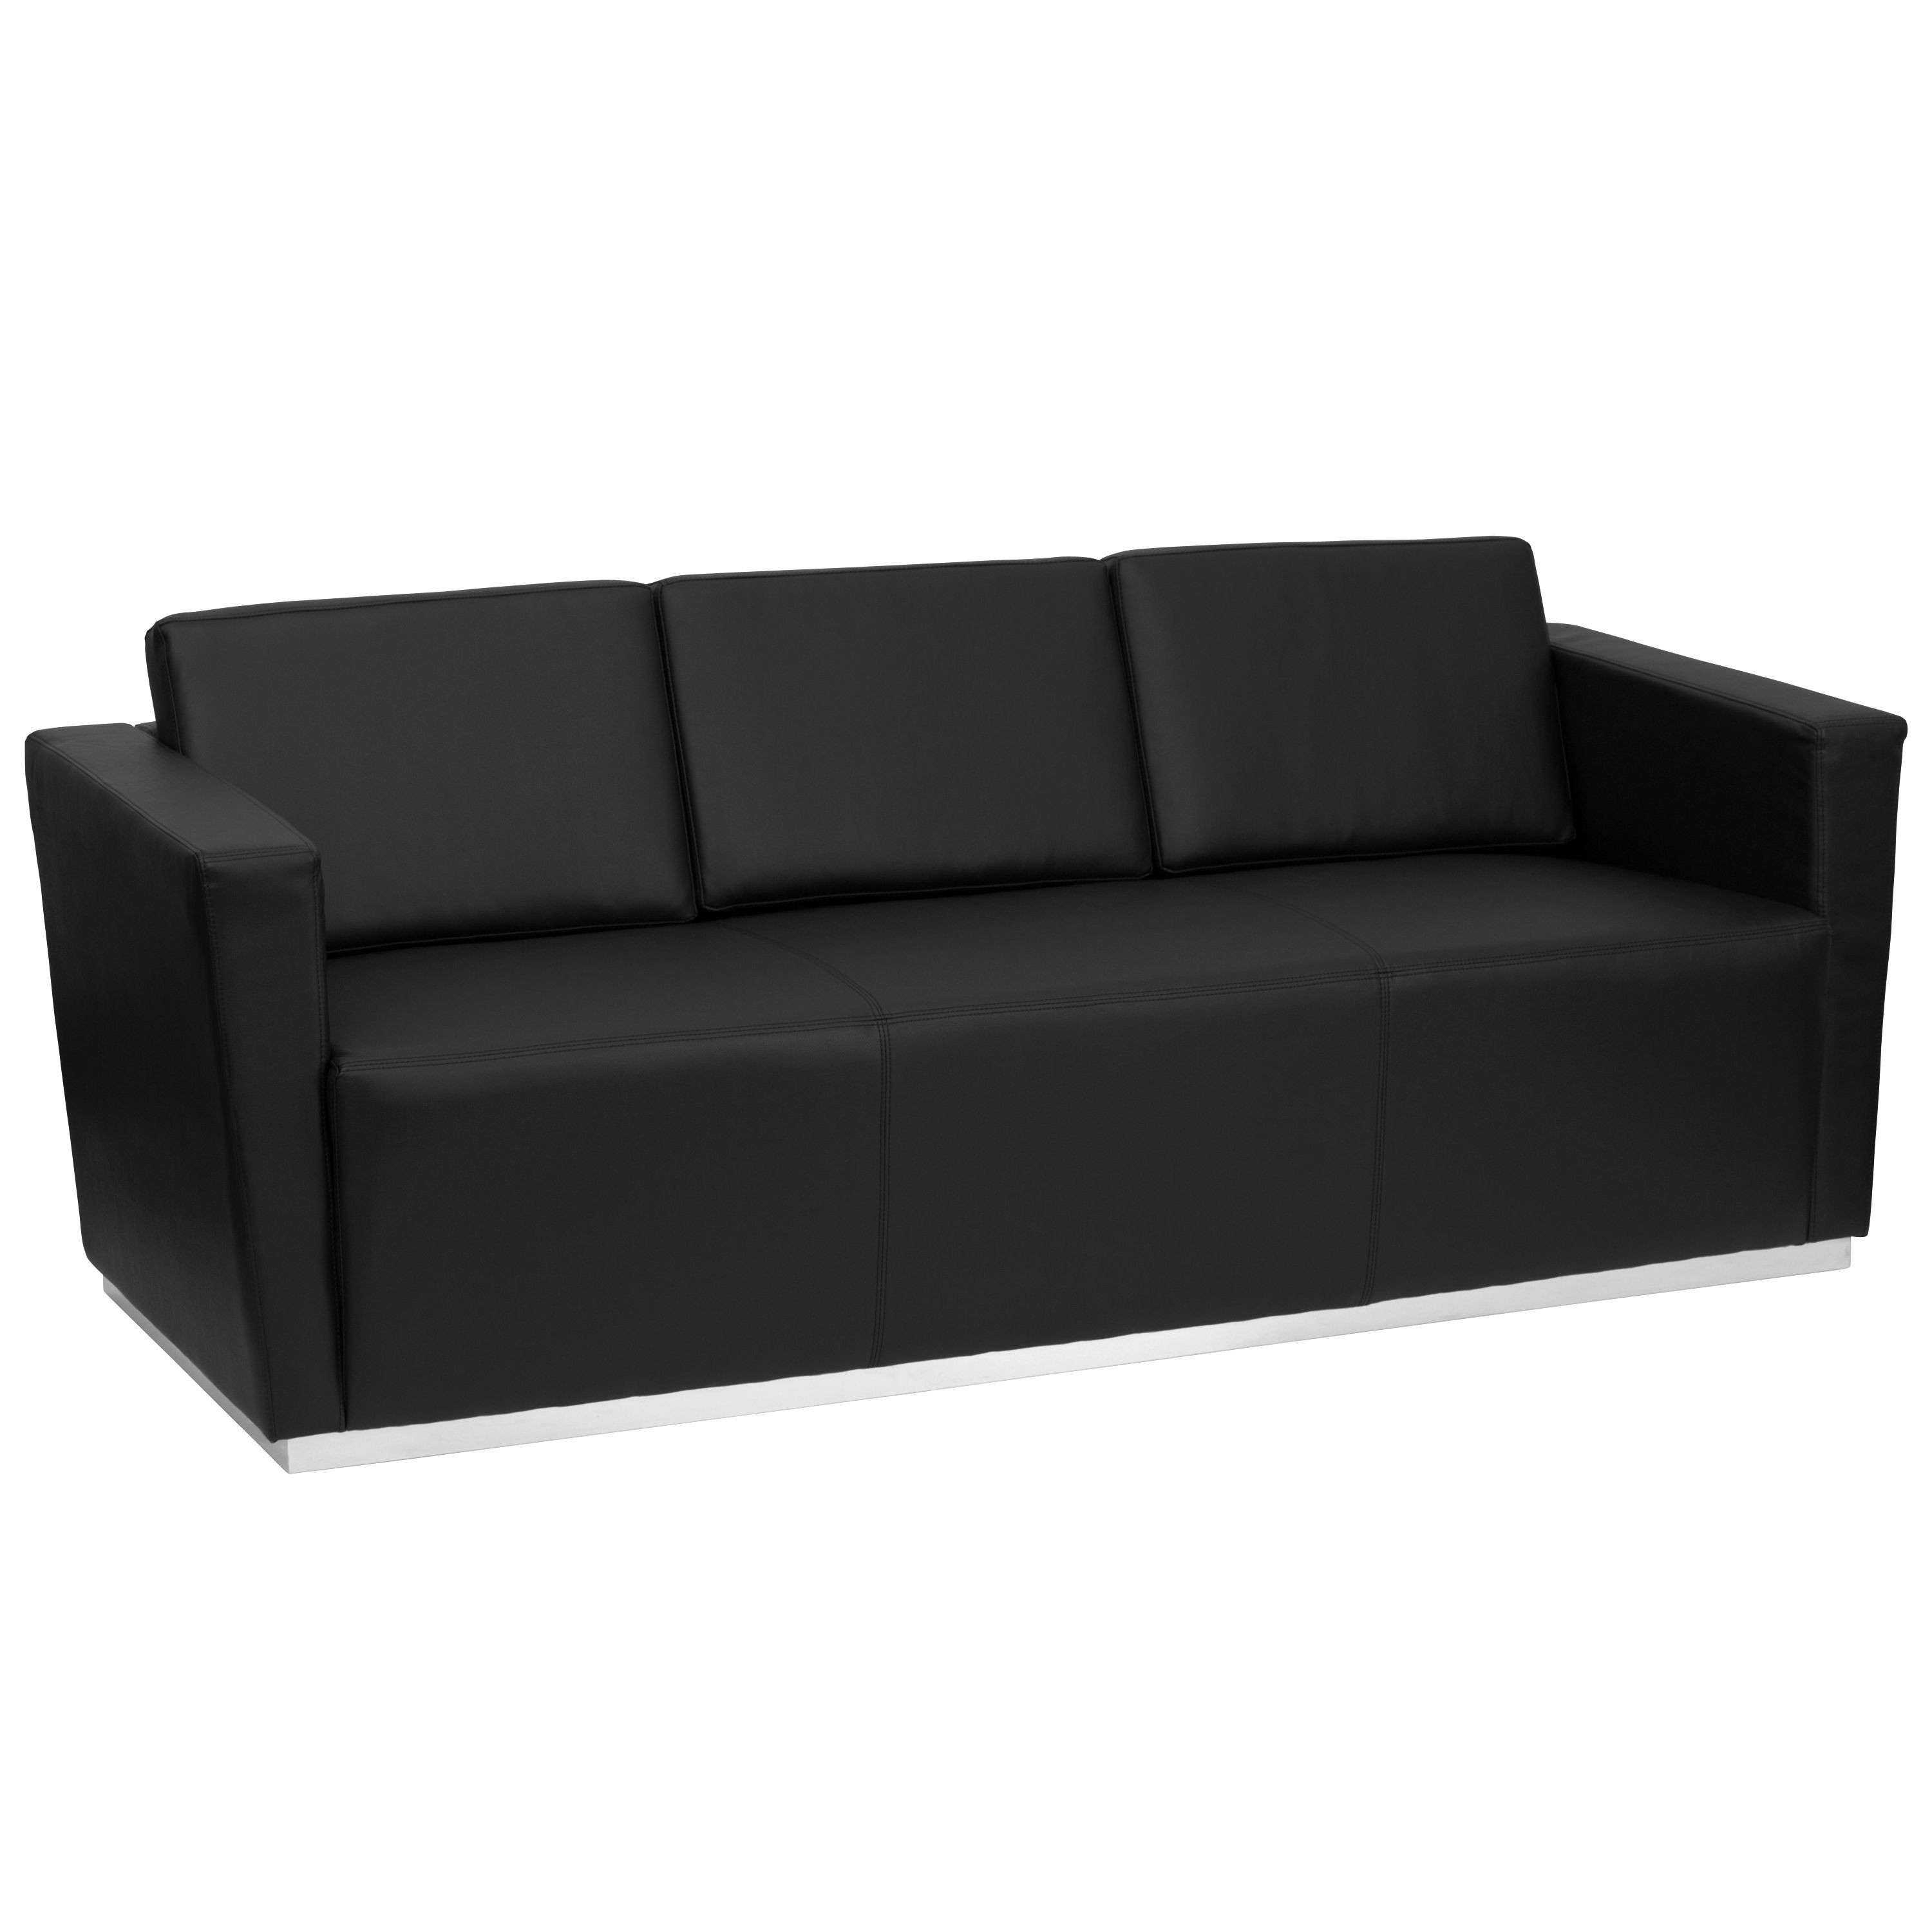 Flash Furniture ZB-TRINITY-8094-SOFA-BK-GG Trinity Series Contemporary Black Leather Sofa with Stainless Steel Base